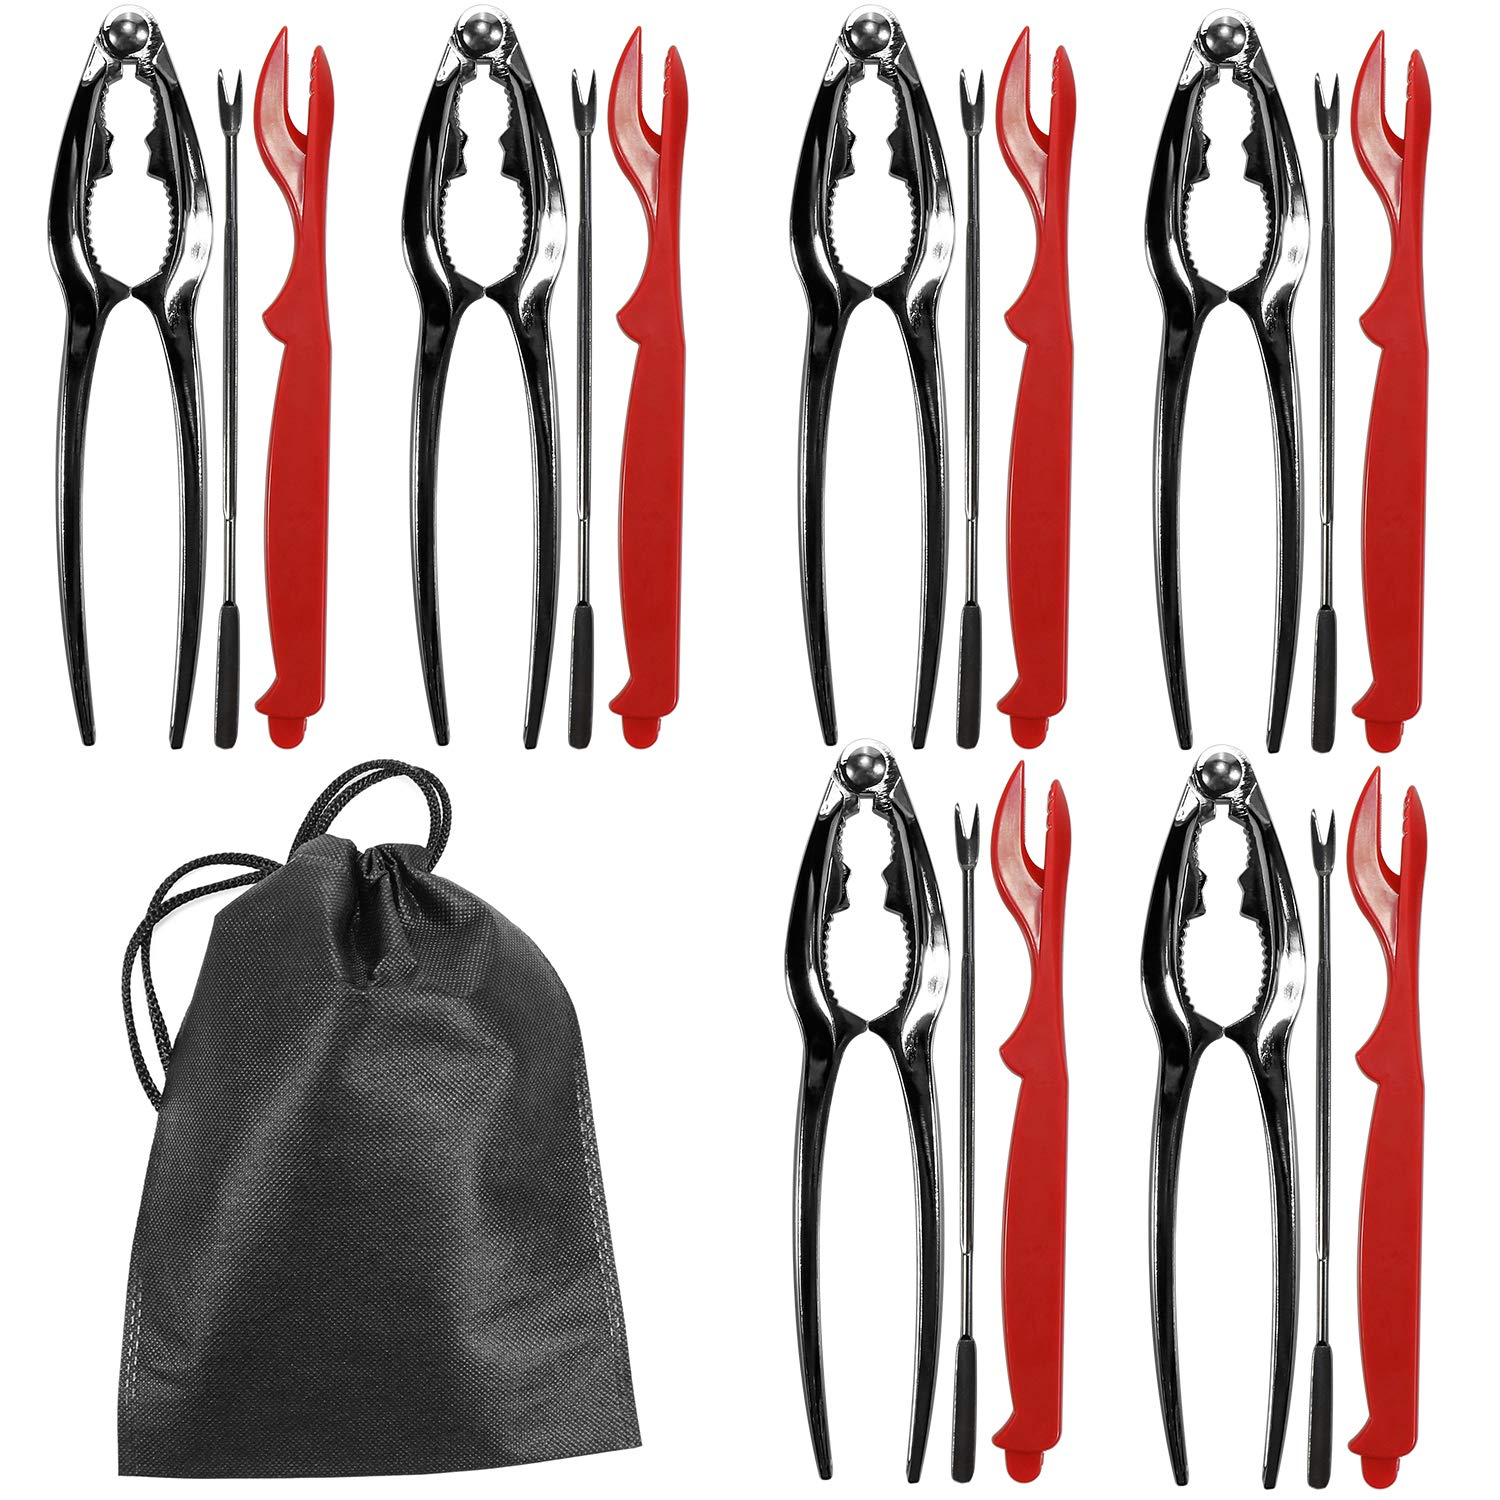 Seafood Tools Set Kit, Crab Nut Lobster Crackers Tools and Forks Set Including 6 Crab Crackers, 6 Lobster Shellers and 6 Forks